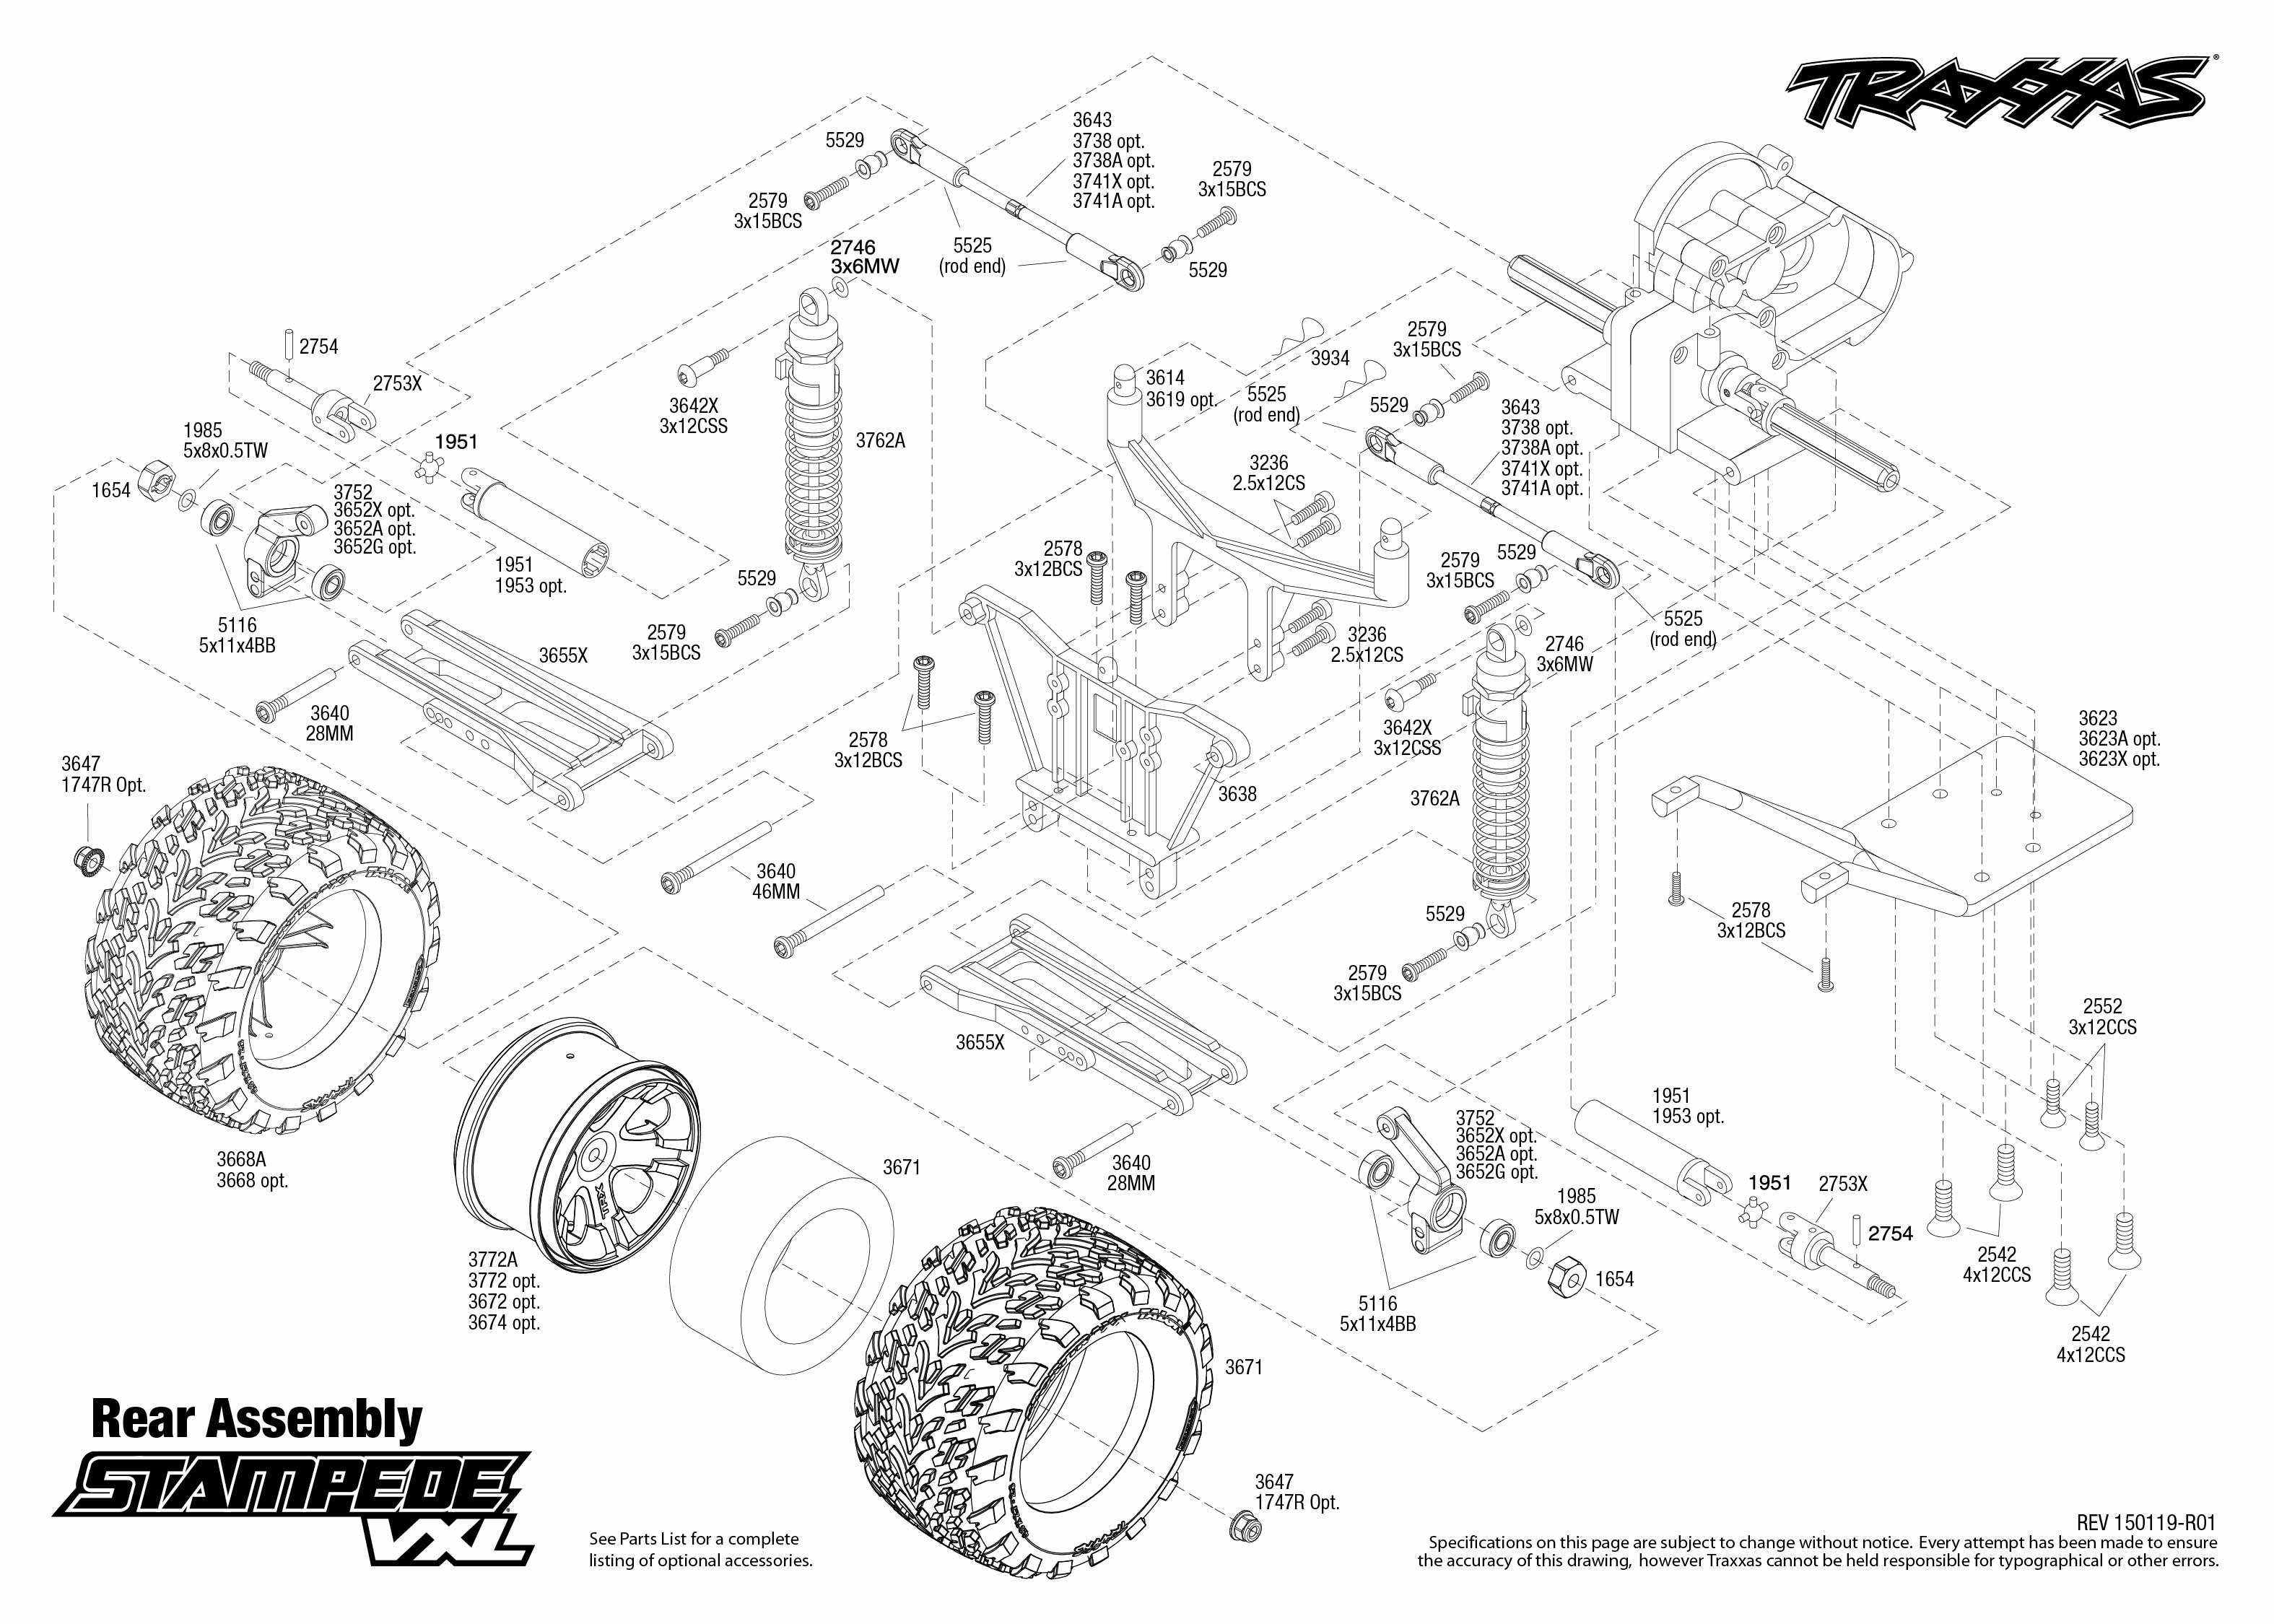 St main besides PAGE7 together with Tra 5309 as well Traxxas Slash 4x4 Upgrades together with Anza Lcg Chassis Set For Traxxas Slash. on traxxas slash 4x4 parts diagram